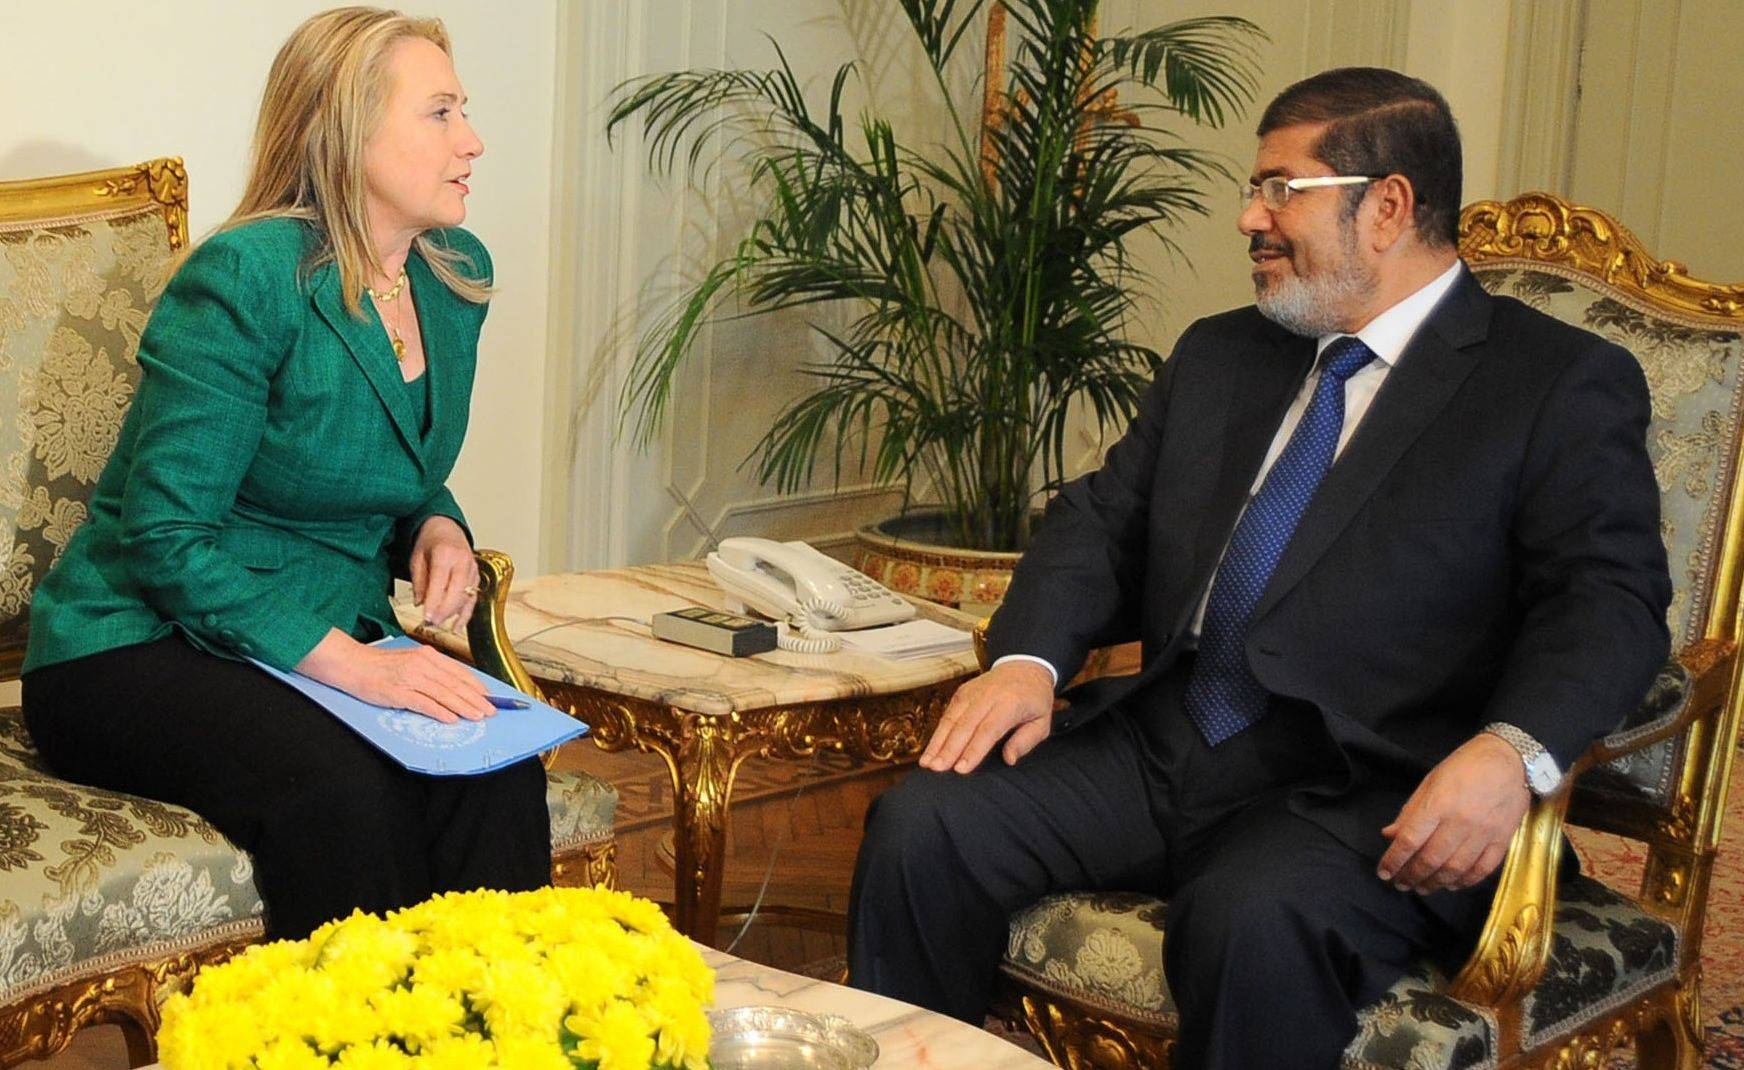 Secretary of State Hillary Rodham Clinton meets with Egyptian President Mohammed Morsi in Cairo Wednesday. Morsi's job brokering an Israeli-Palestinian cease-fire has re-established Egypt's major role in Mideast affairs.